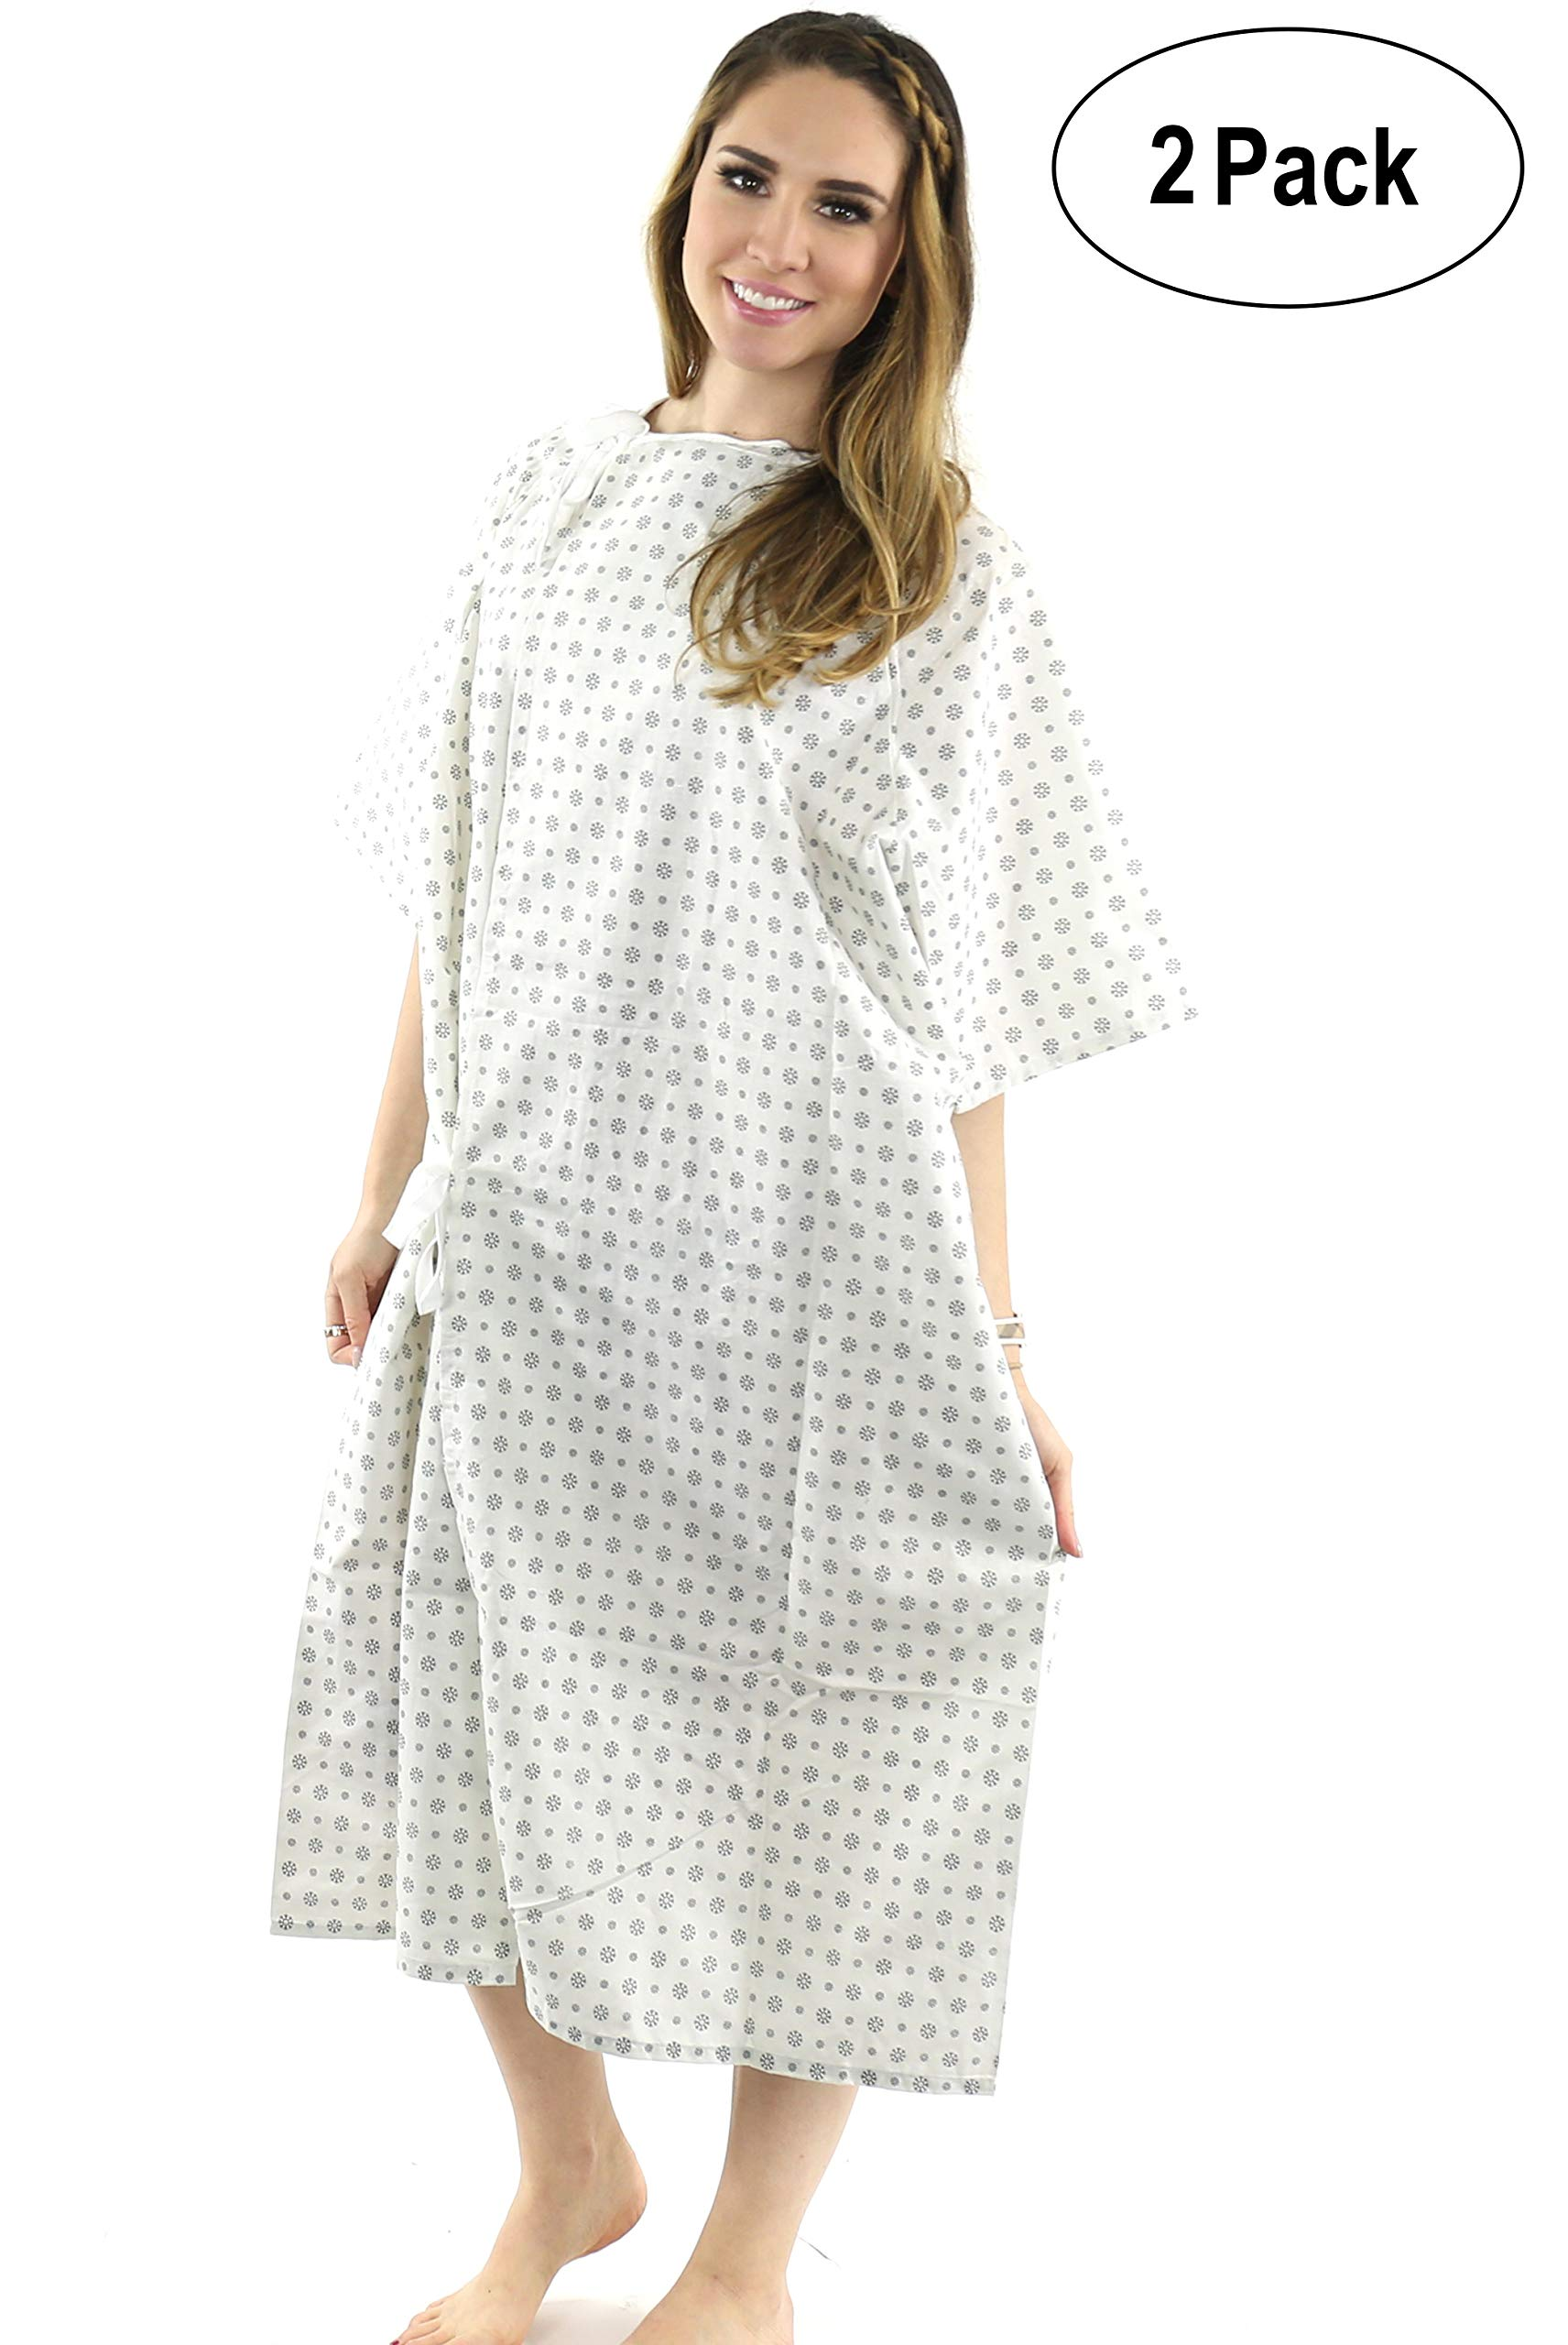 Hospital Gown (2 Pack) Cotton Blend Useful Fashionable Patient Gowns Back Tie 46'' L& 66'' W Fits All Sizes to 2xL Sizes Fit Comfortably - Hospital Gown (2 Pack)